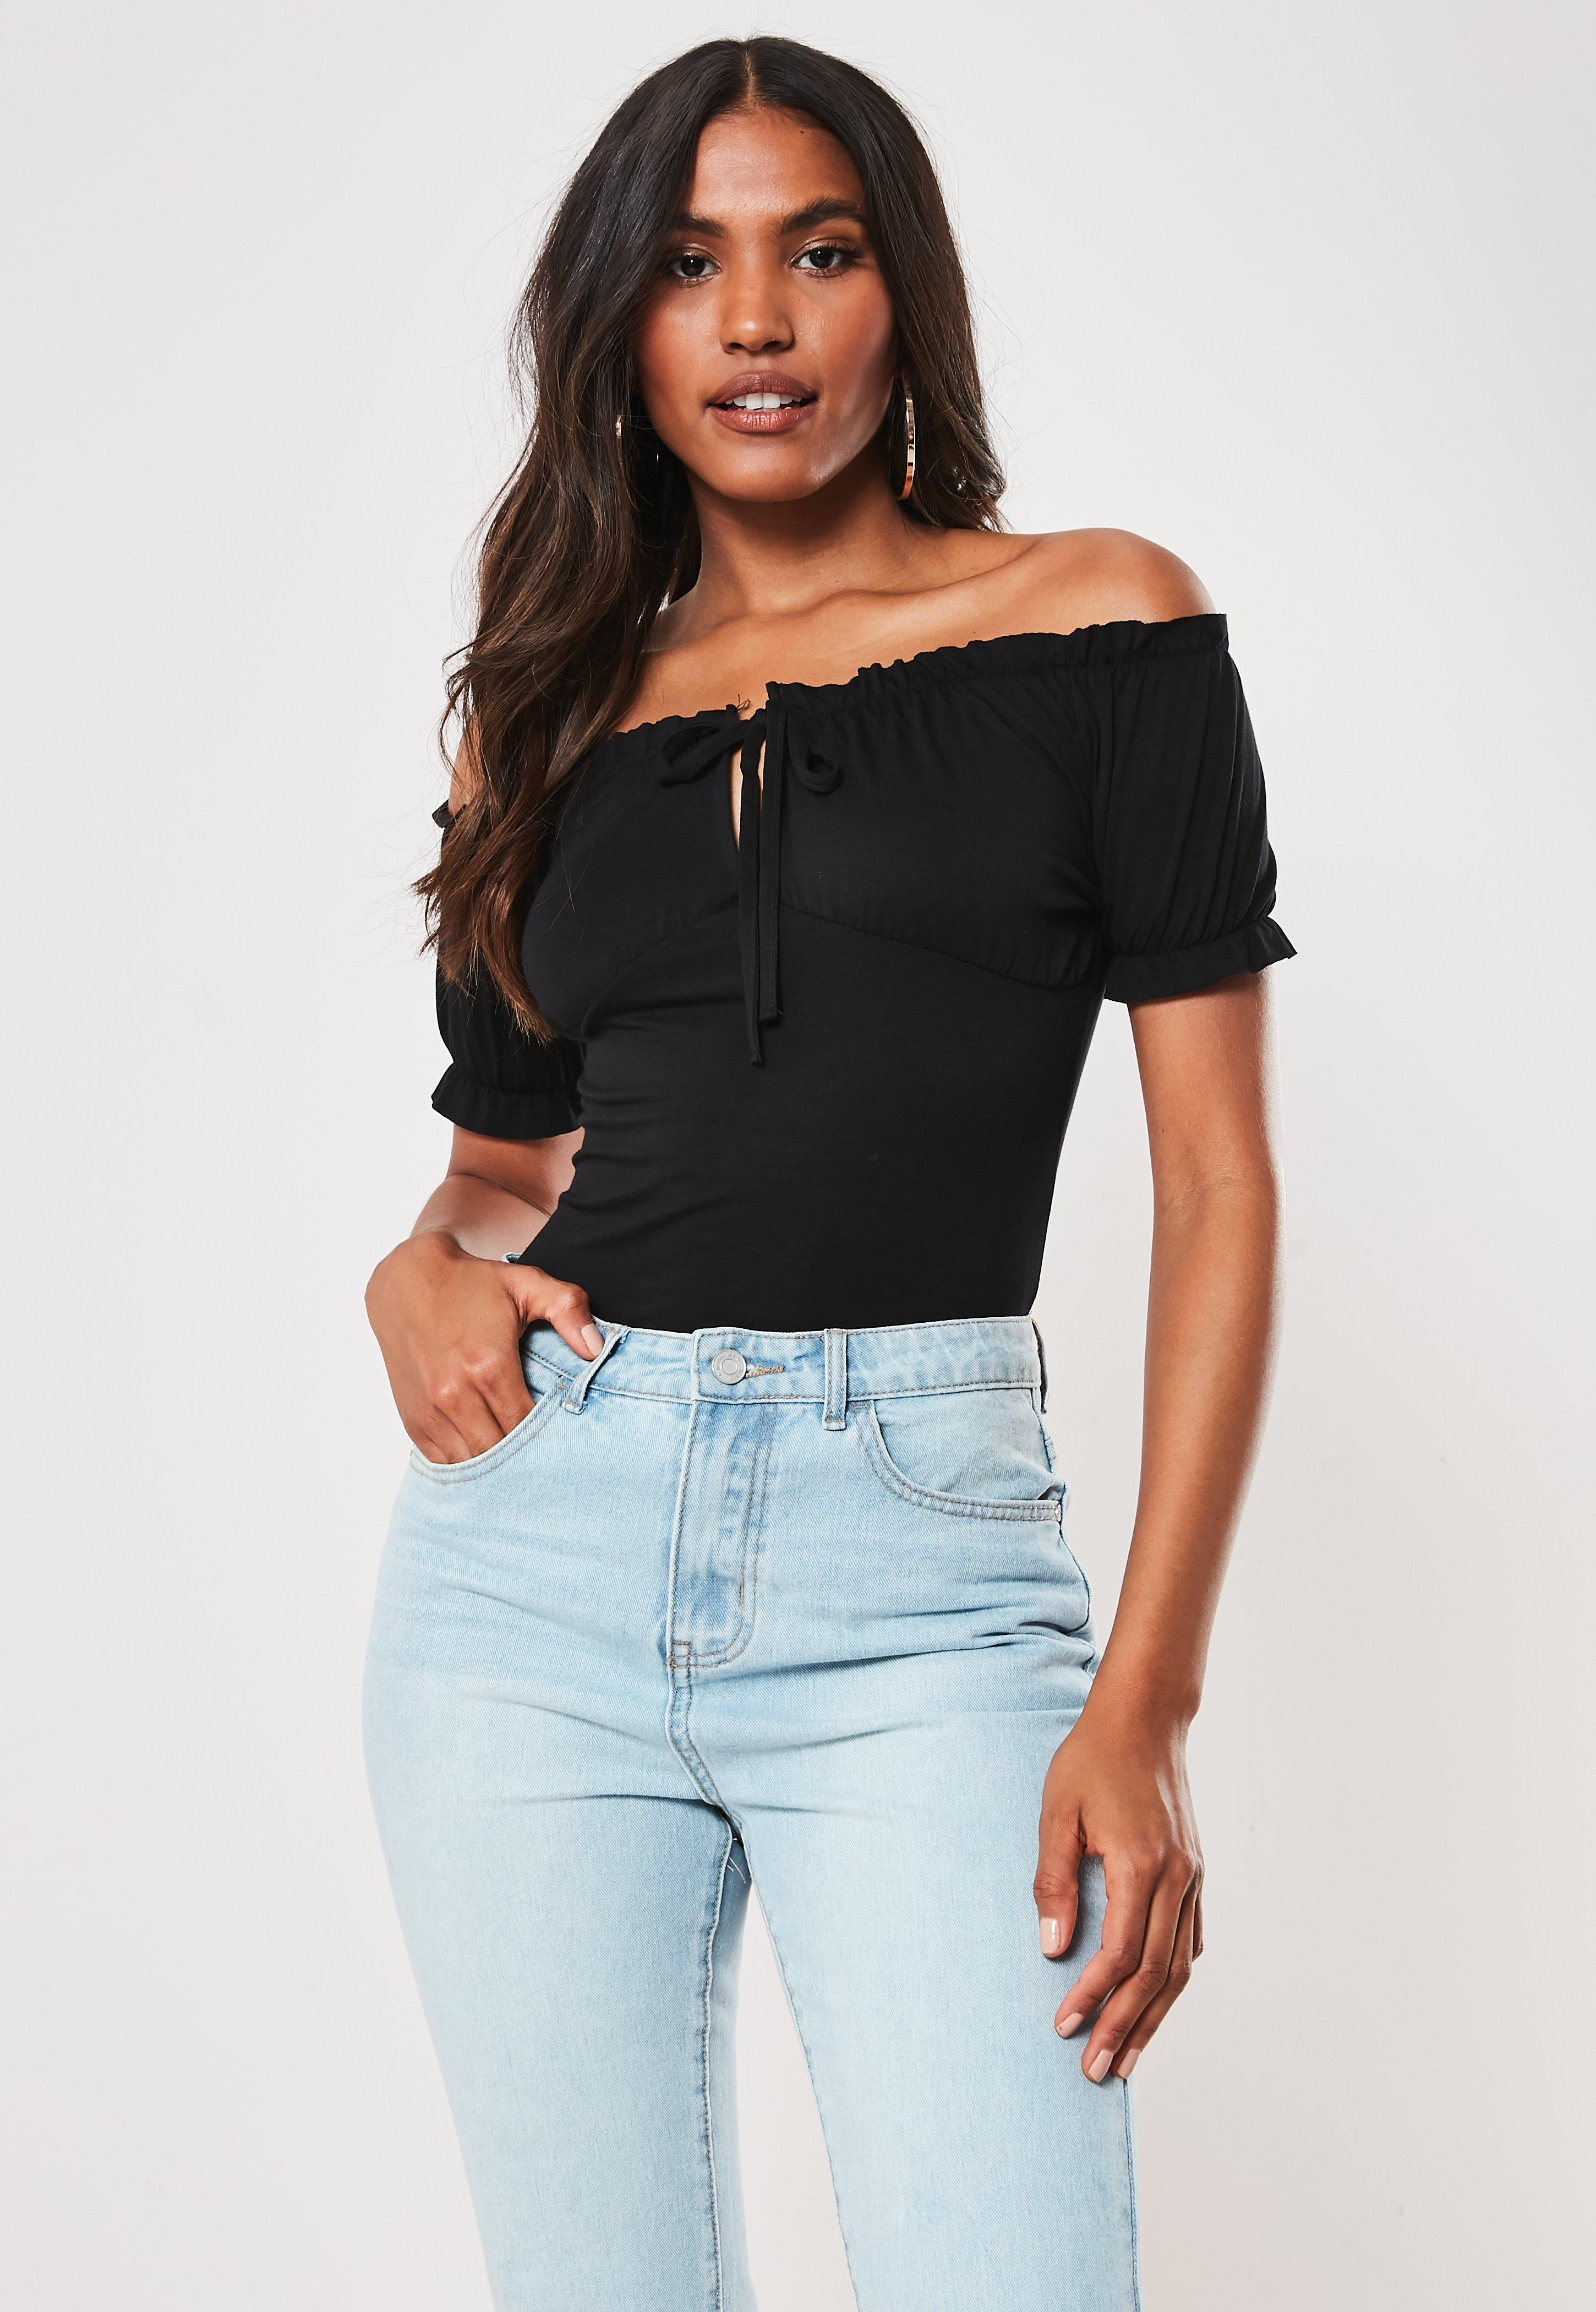 99e9aa2ab61 Bardot Tops - Off the Shoulder Tops | Missguided